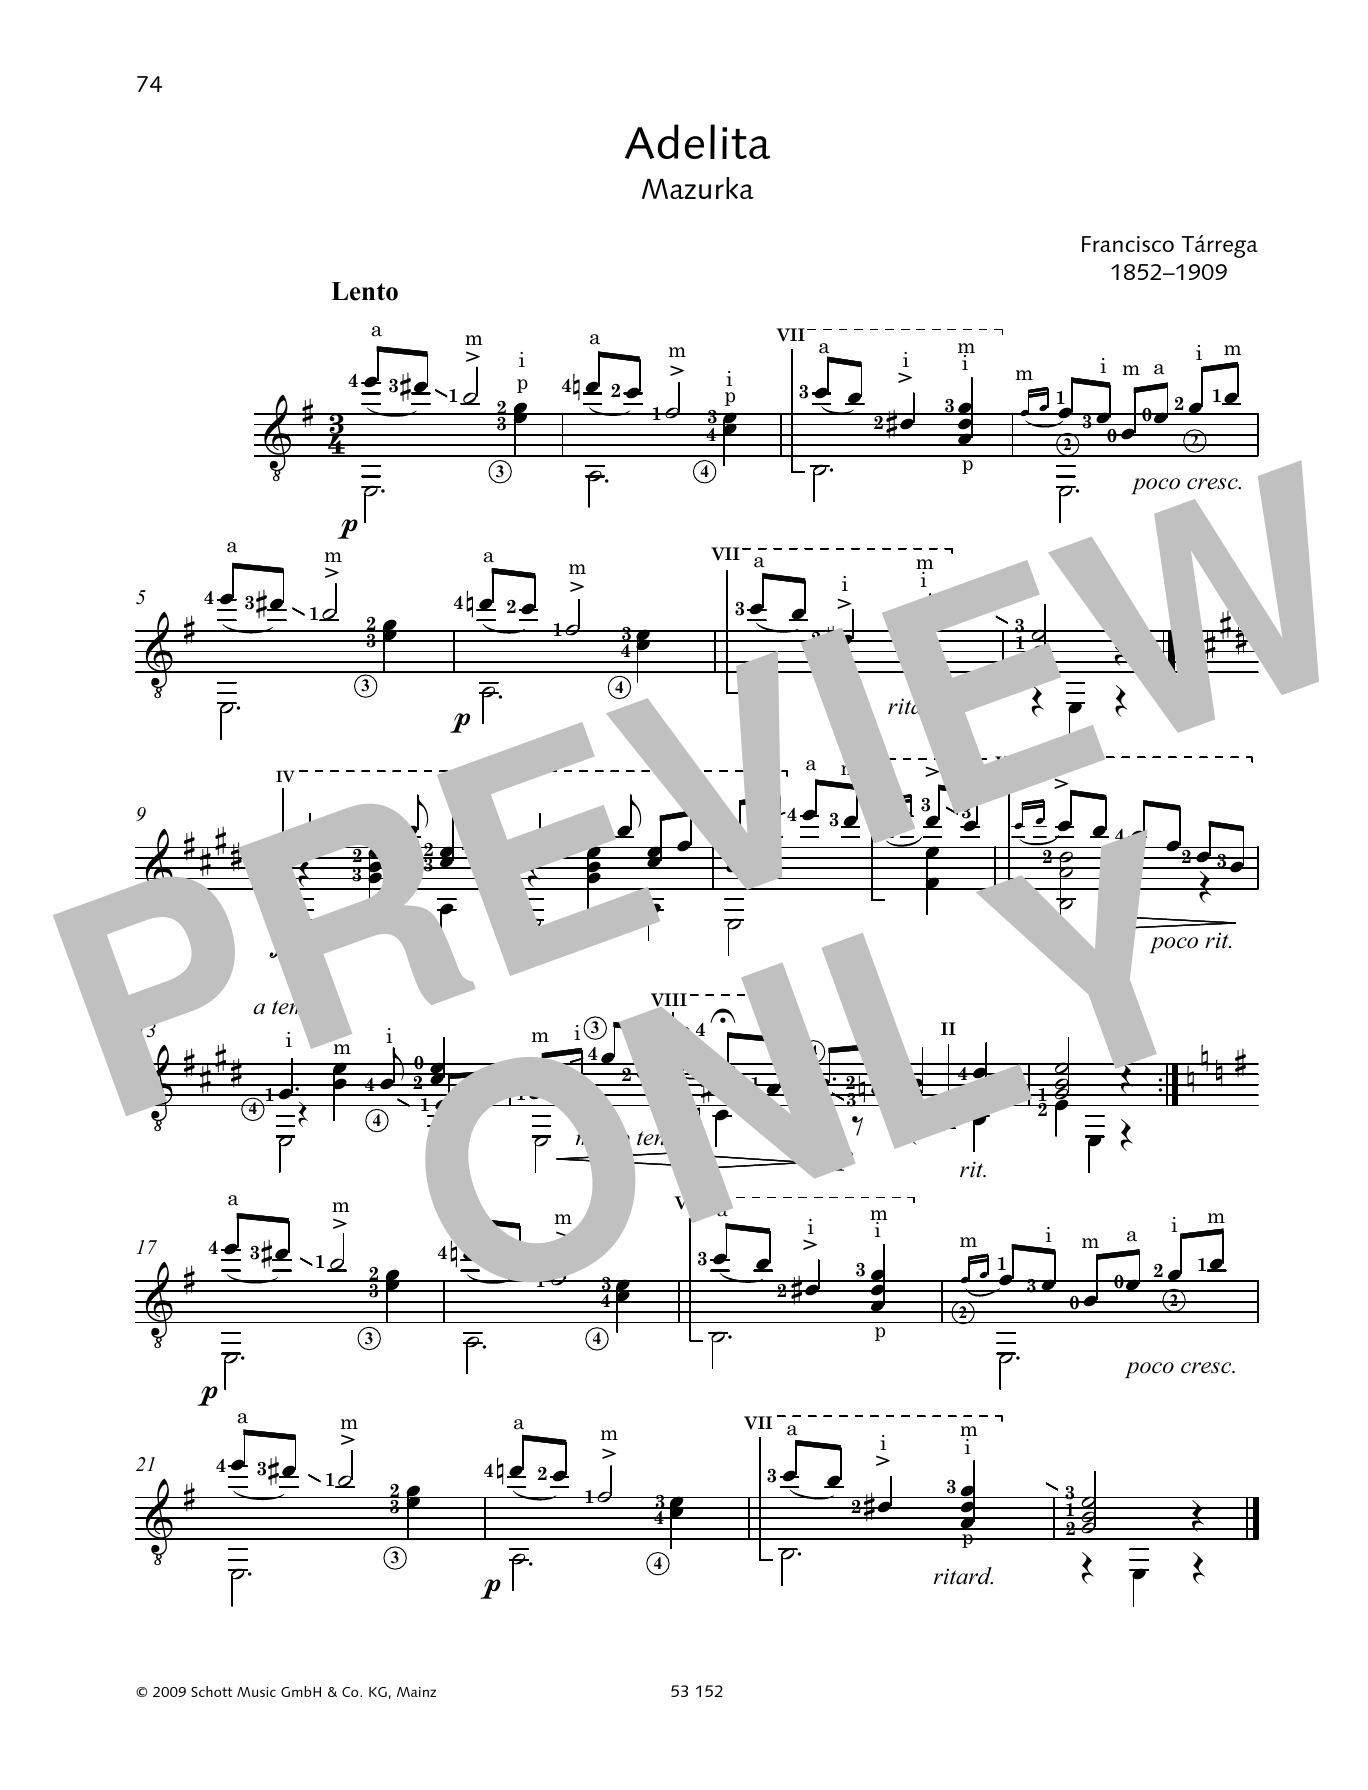 Adelita by Francisco Tárrega Solo Guitar Tab Digital Sheet Music